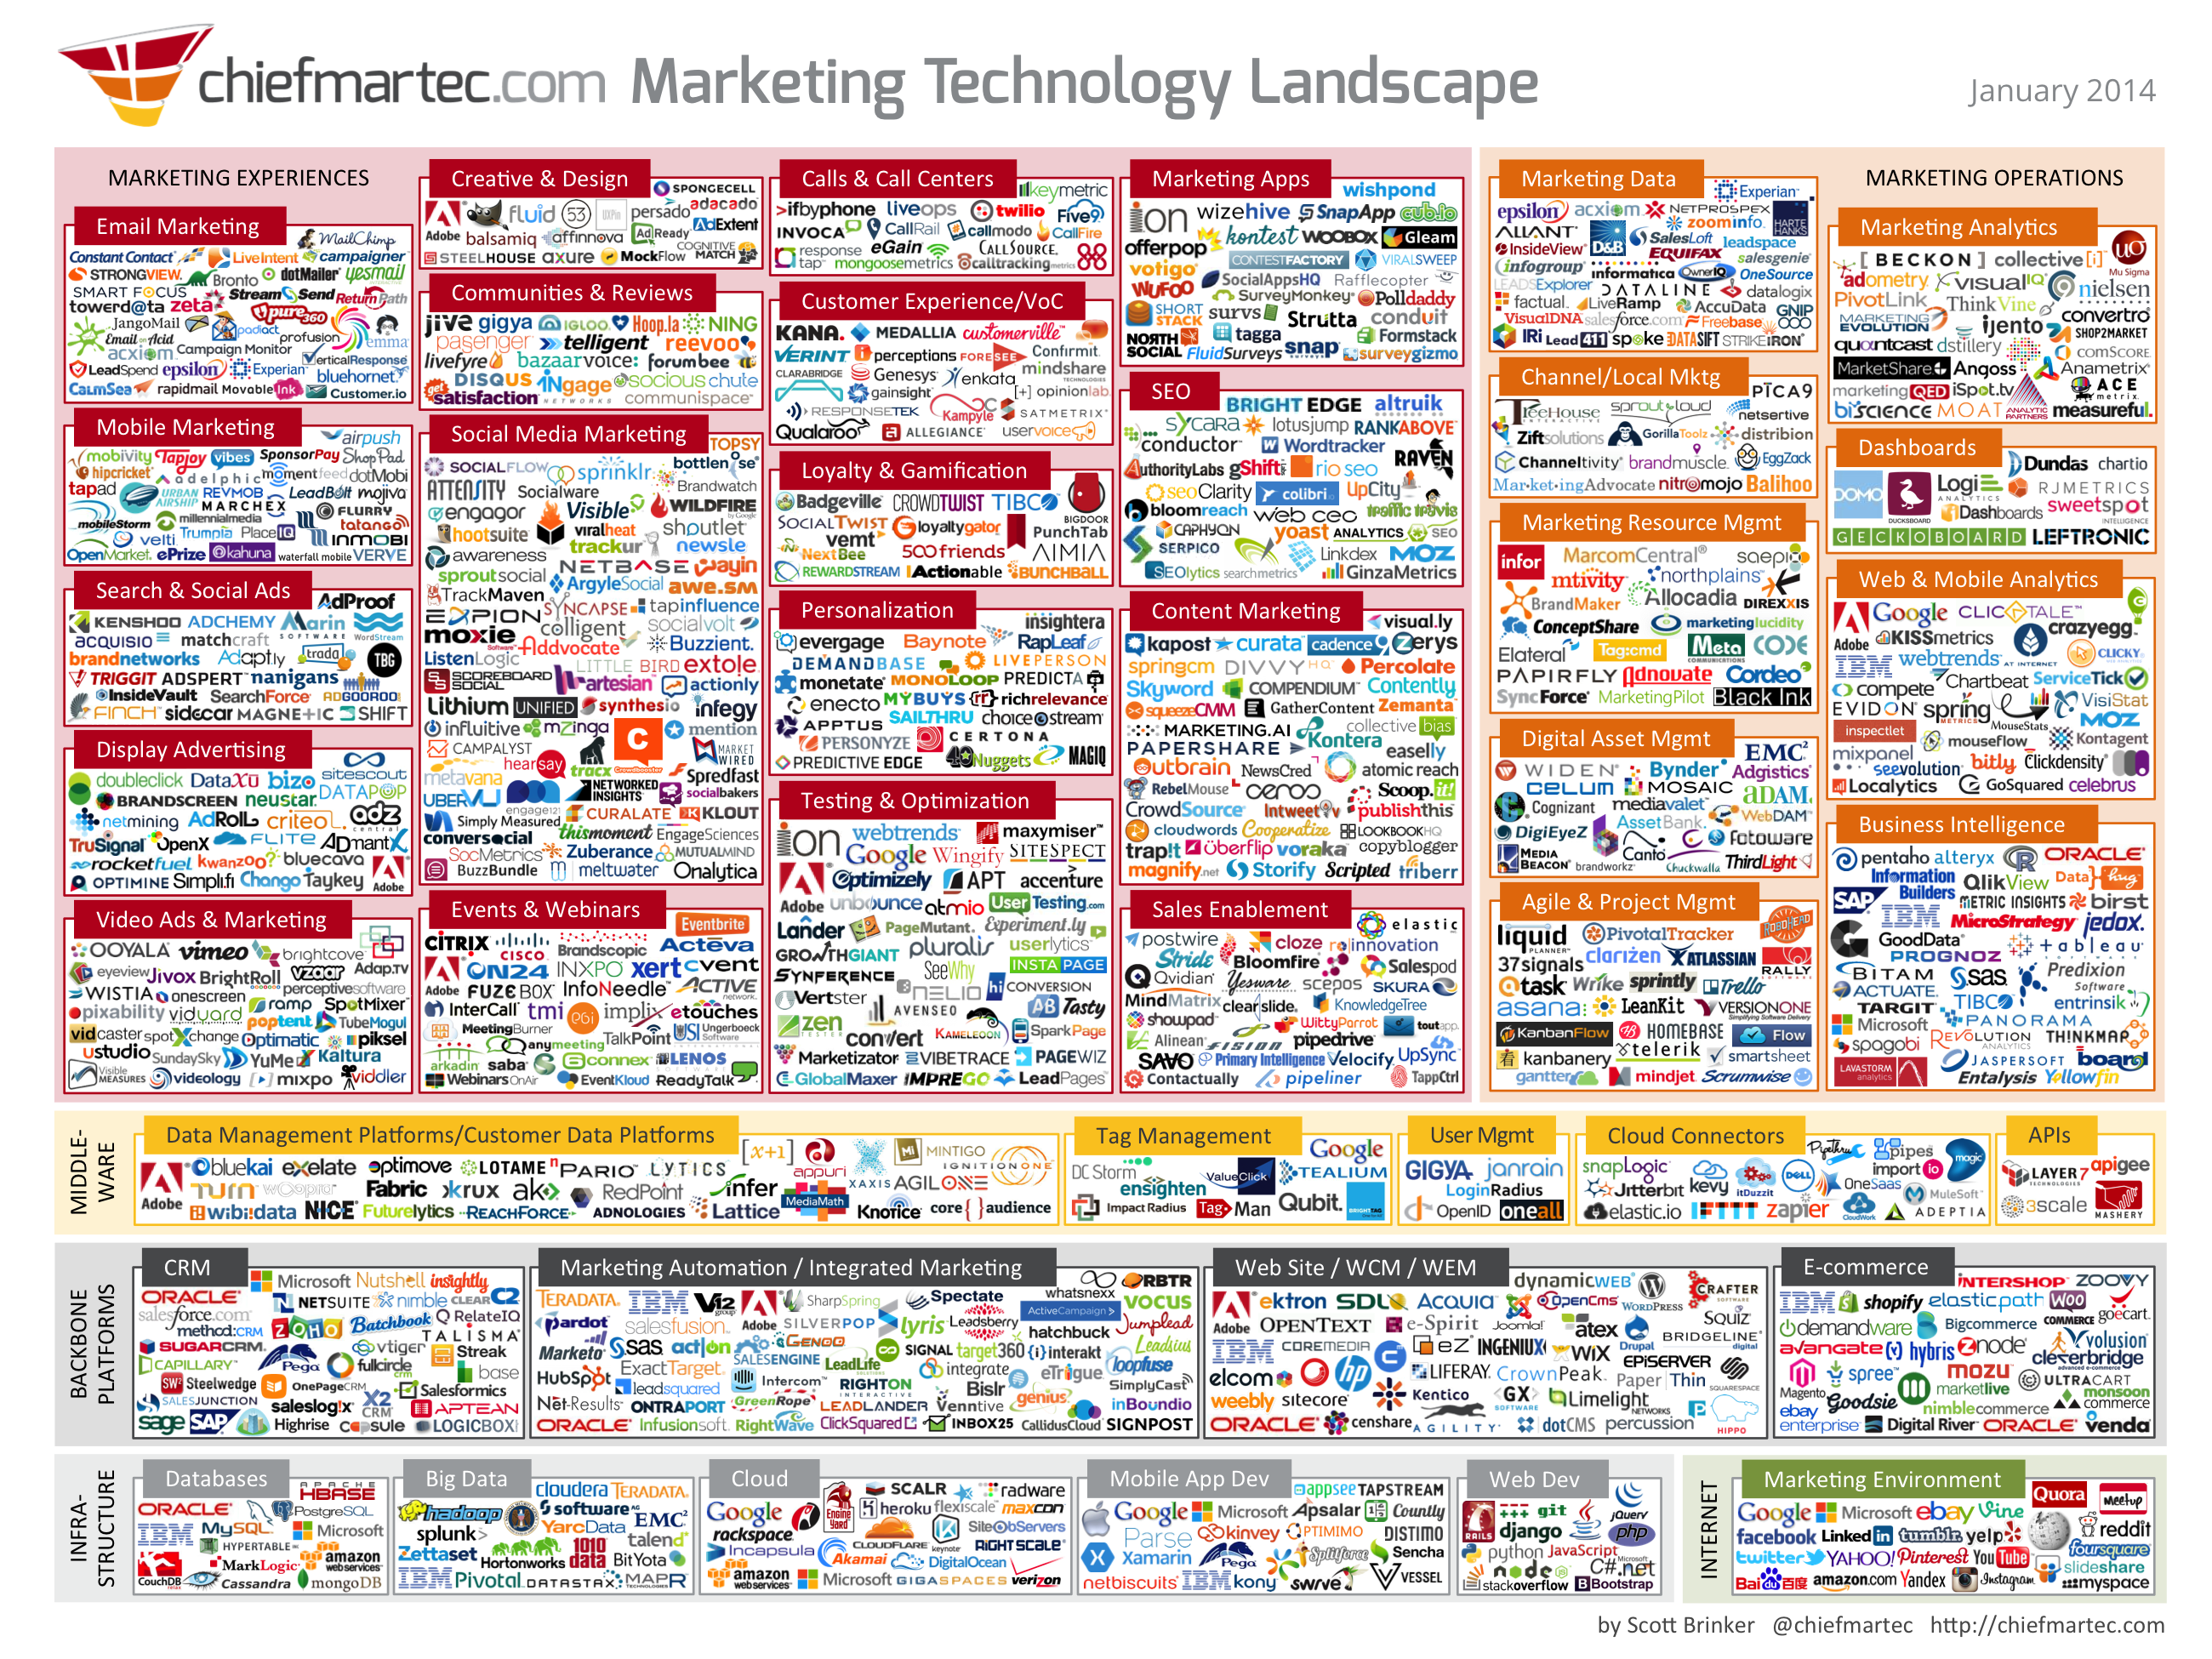 ... in the New Marketing Technology Landscape | What's The Big Data